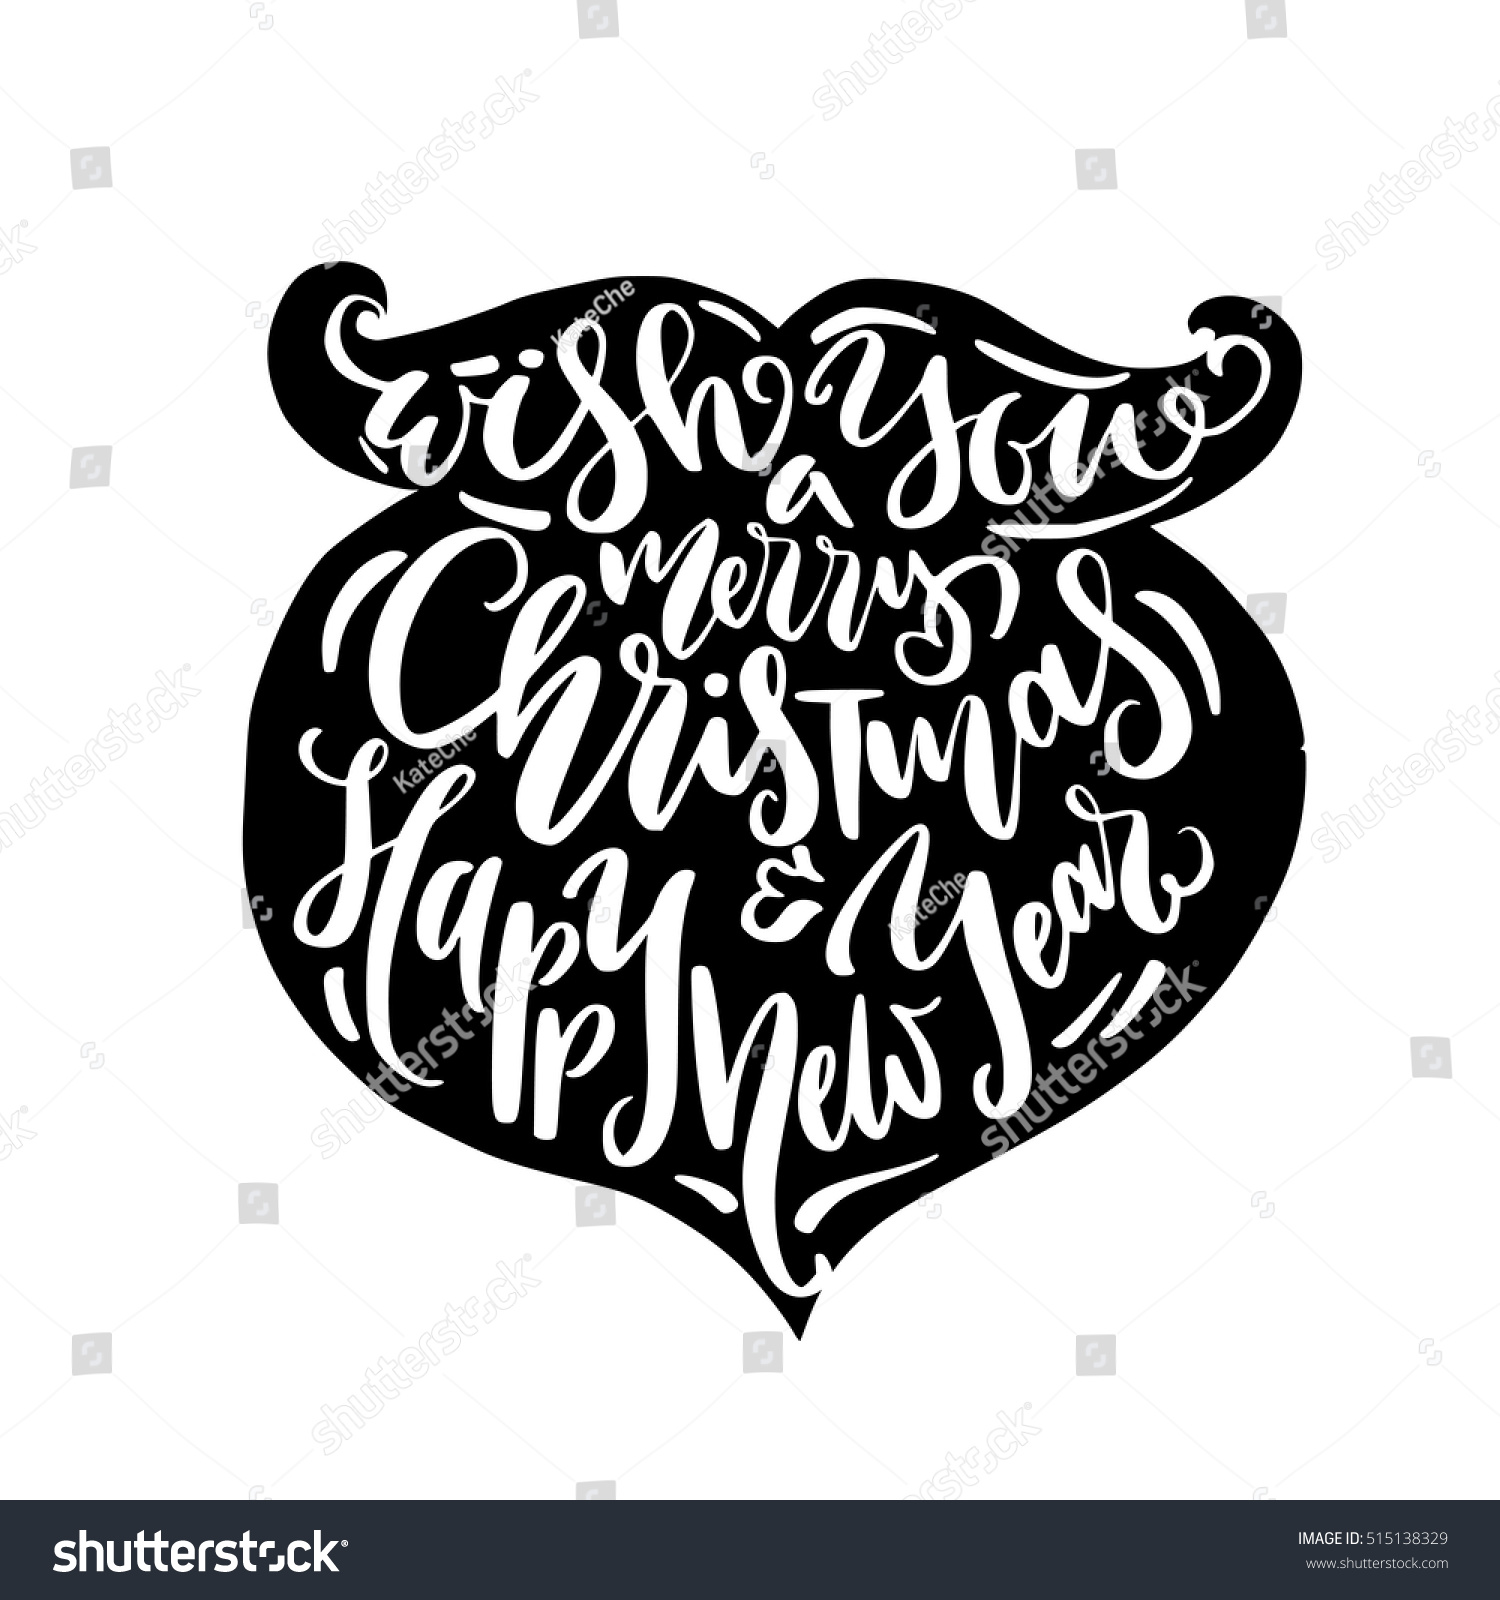 Christmas illustration beard silhouette calligraphy greetings stock christmas illustration beard silhouette with calligraphy greetings happy new year hand drawn lettering design for kristyandbryce Gallery